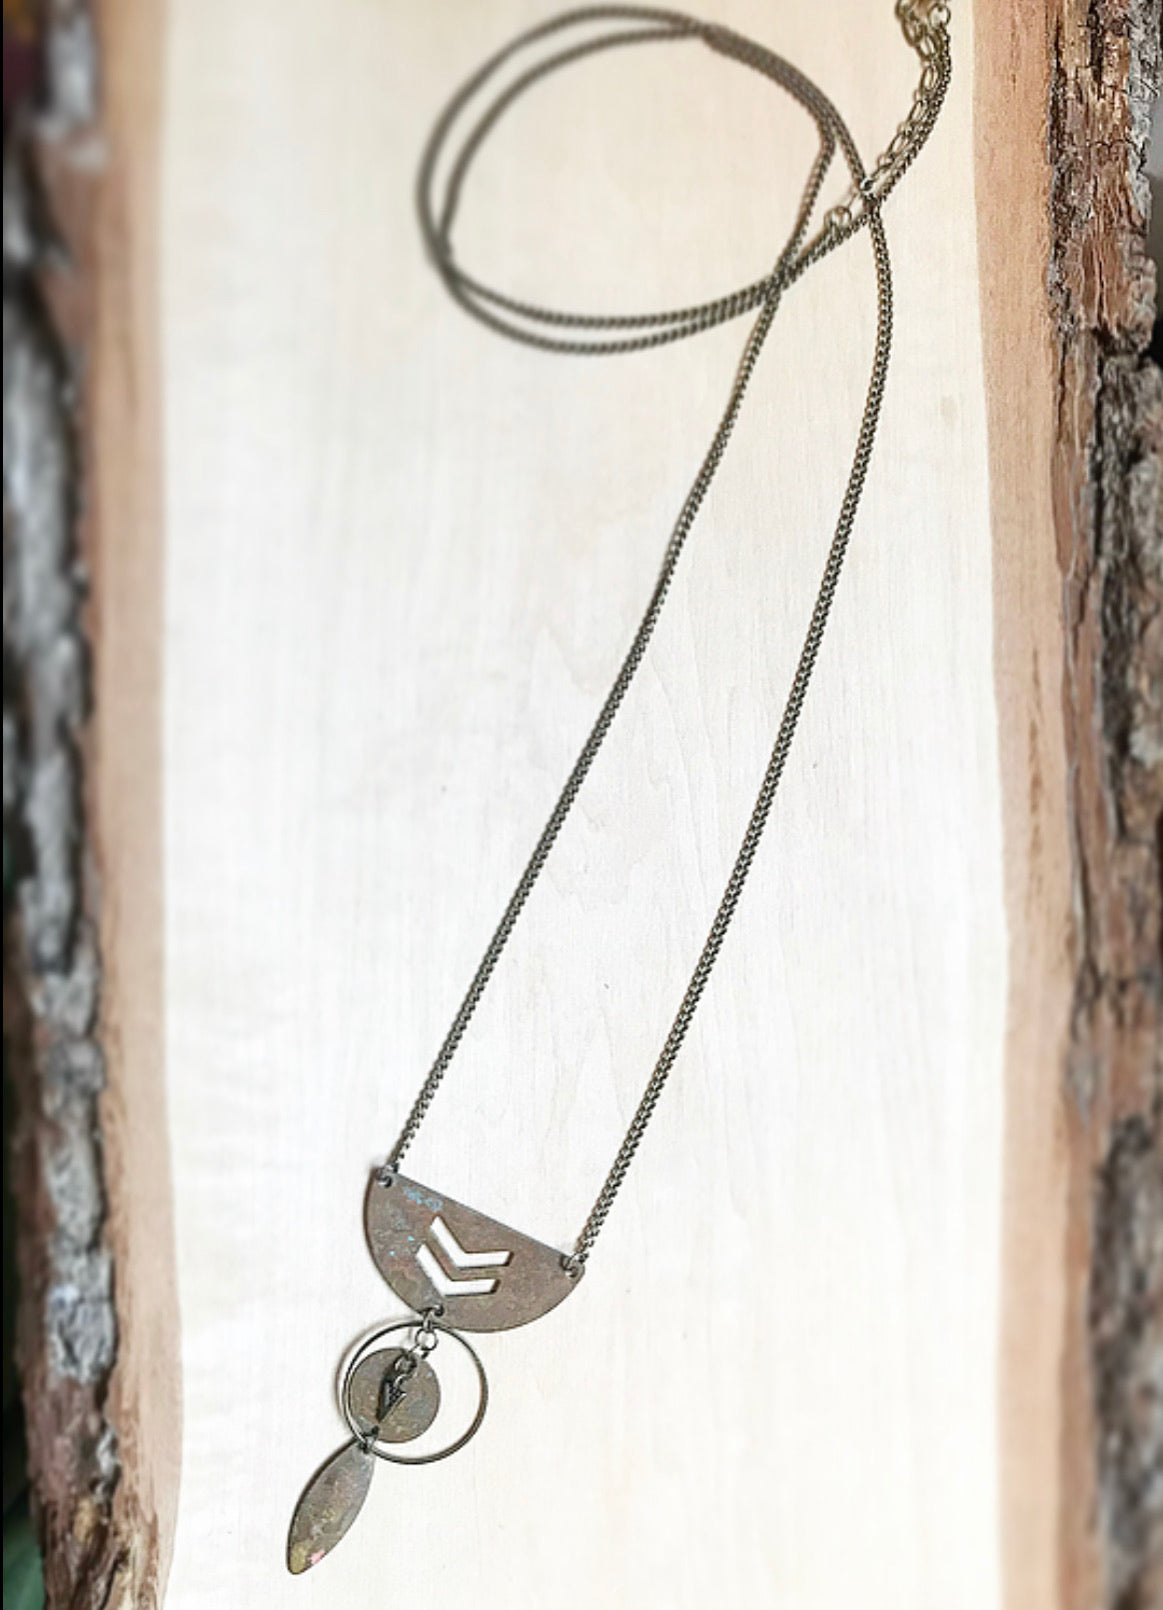 Urban Decay Arrow Necklace